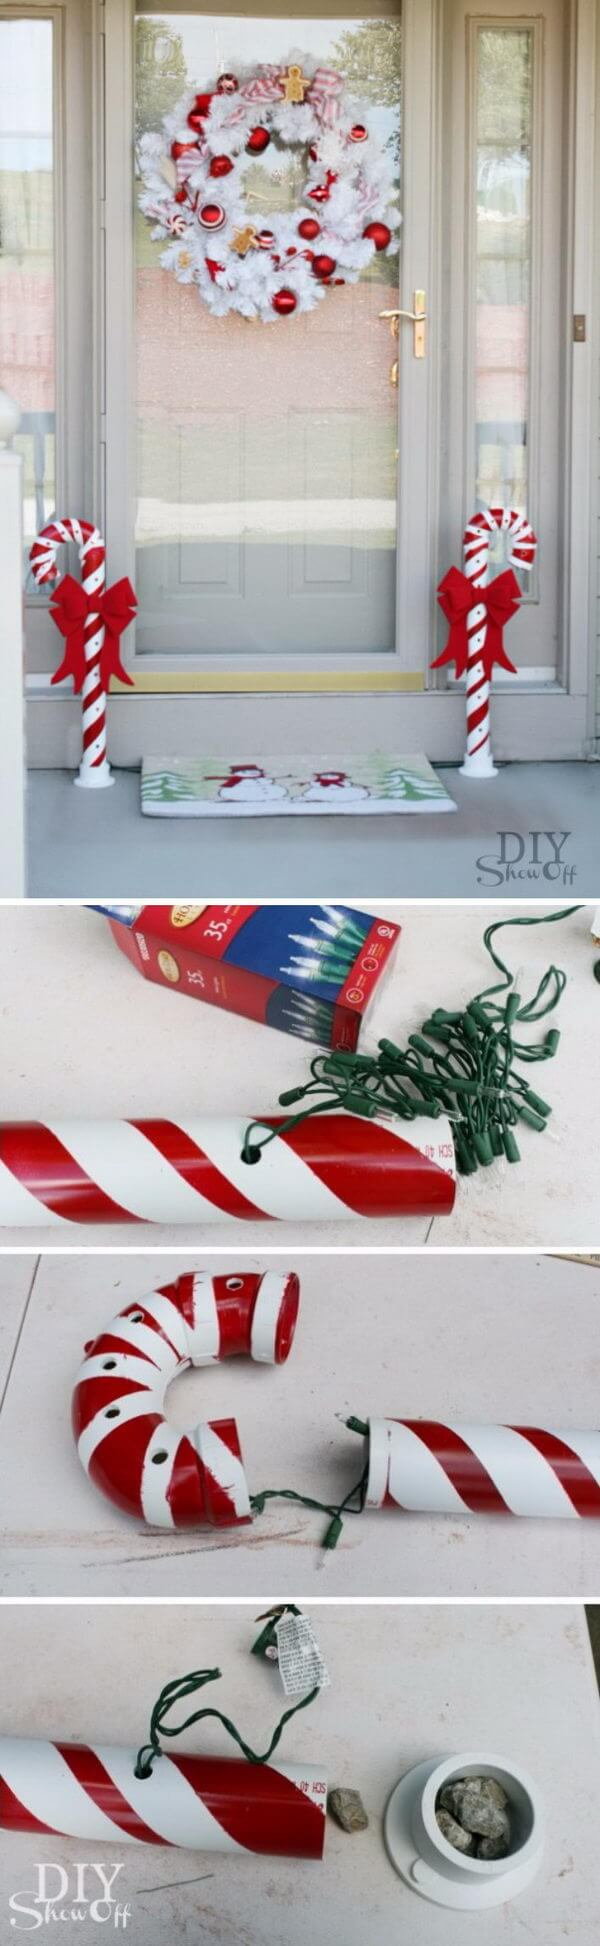 Lighted PVC Candy Cane Set